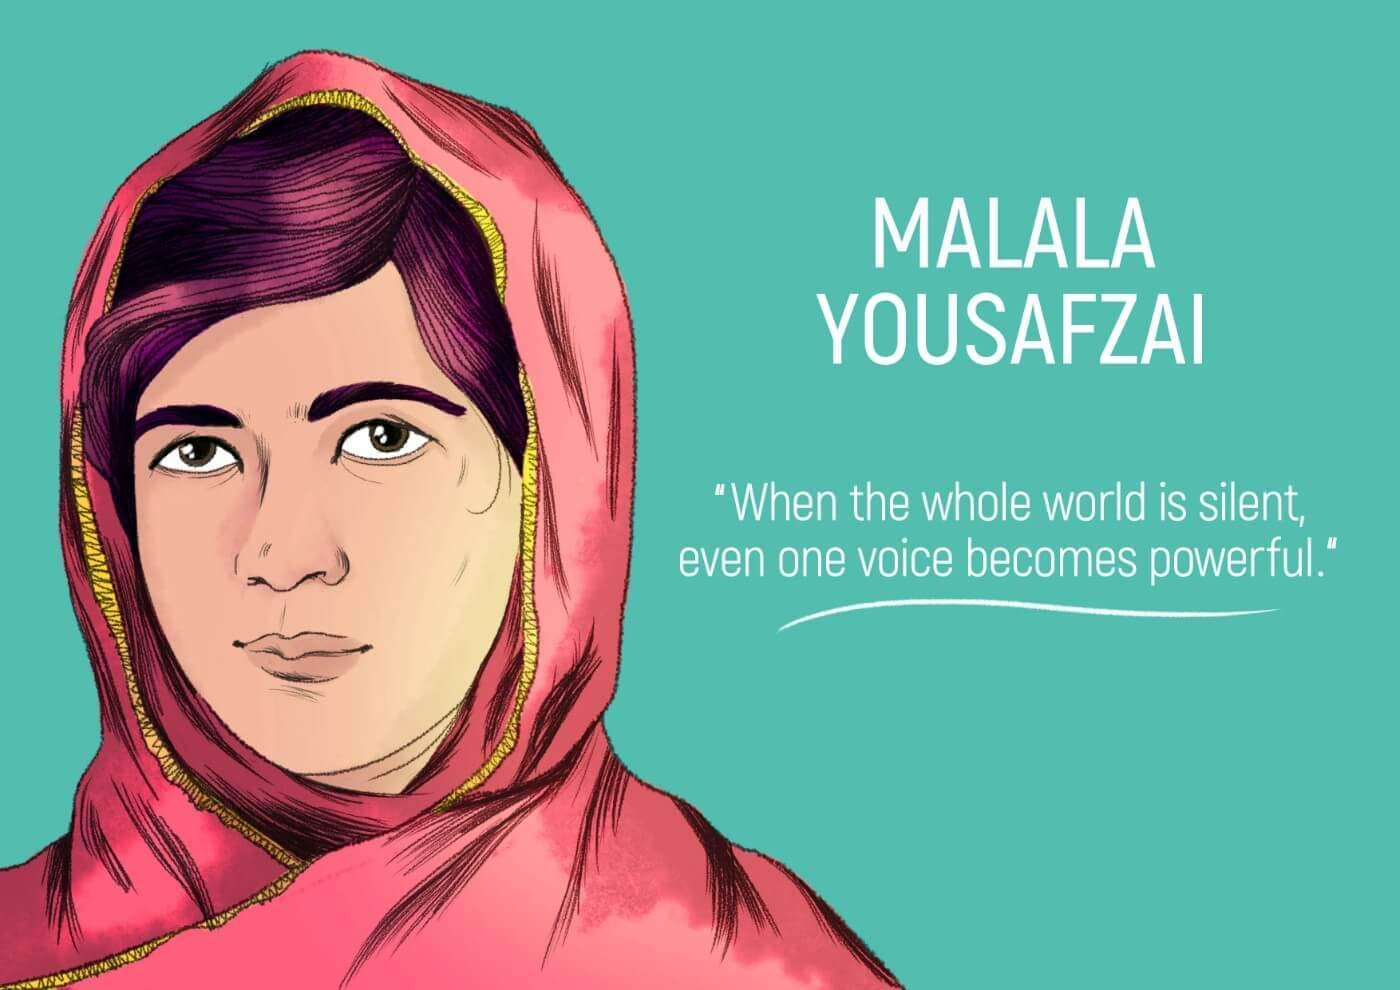 Tallenge Malala Yousafzai Quote Magnets 4 X 6 Inches Amazon In Home Kitchen